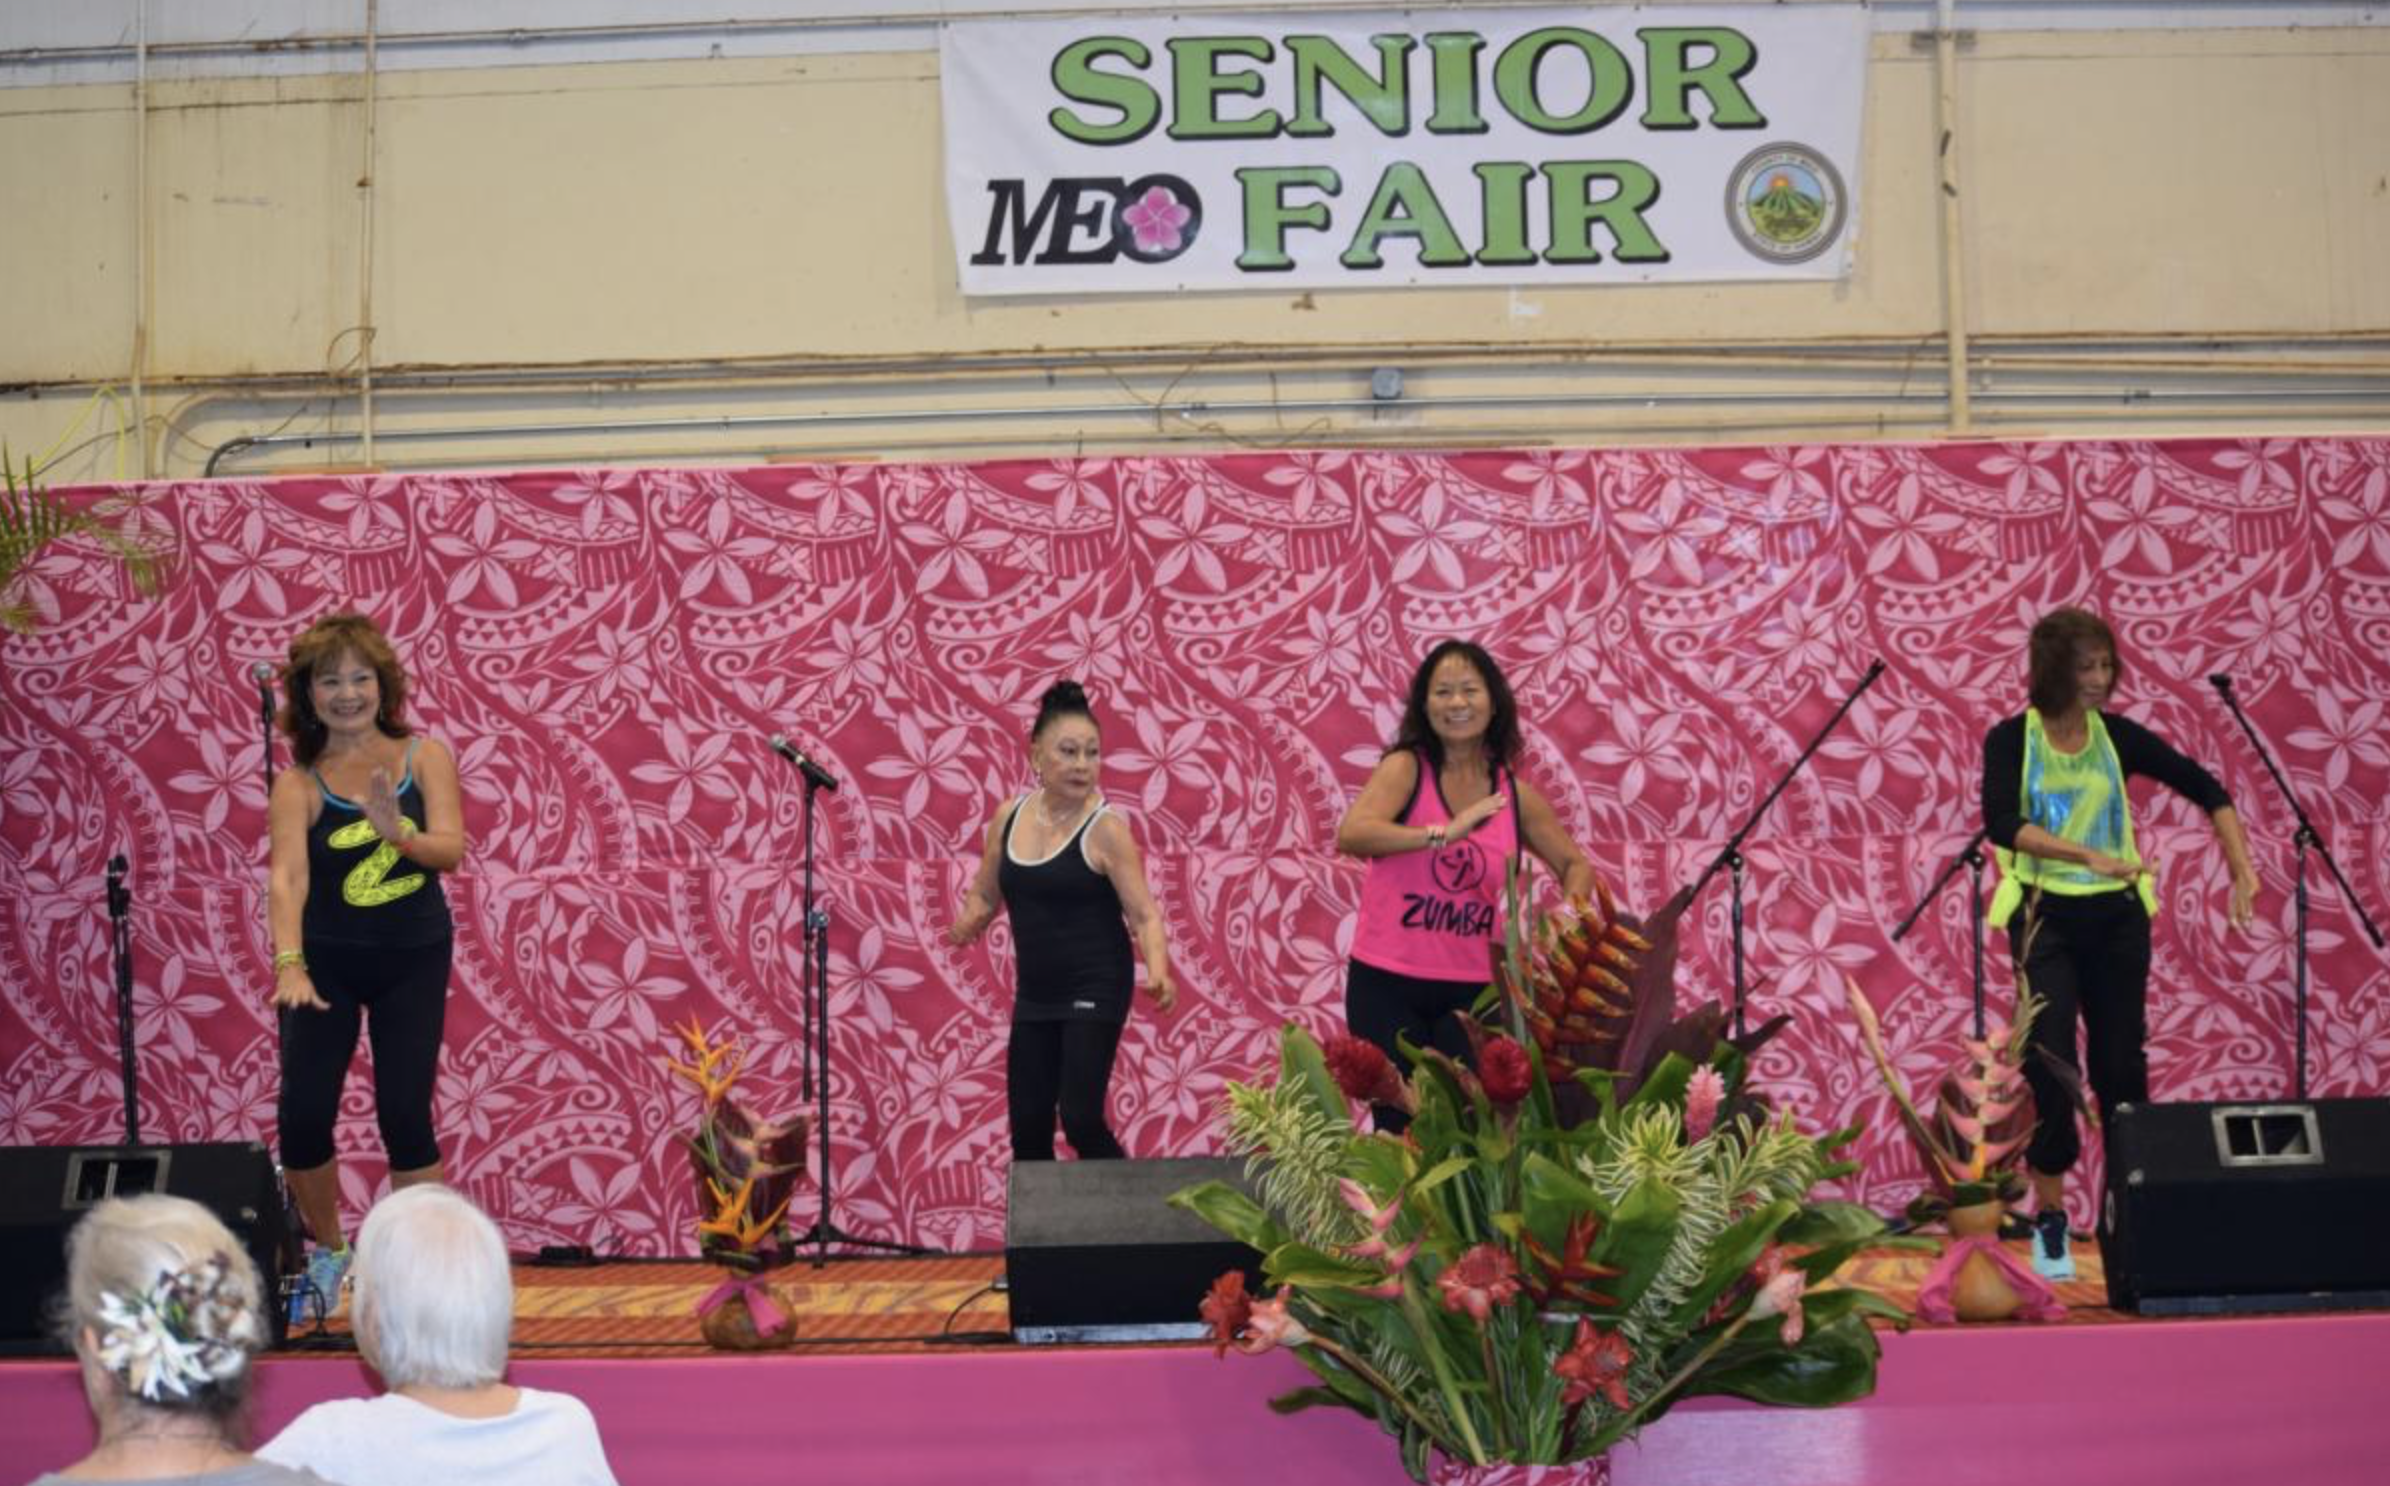 47th Annual Maui County Senior Fair to Be Held Virtually